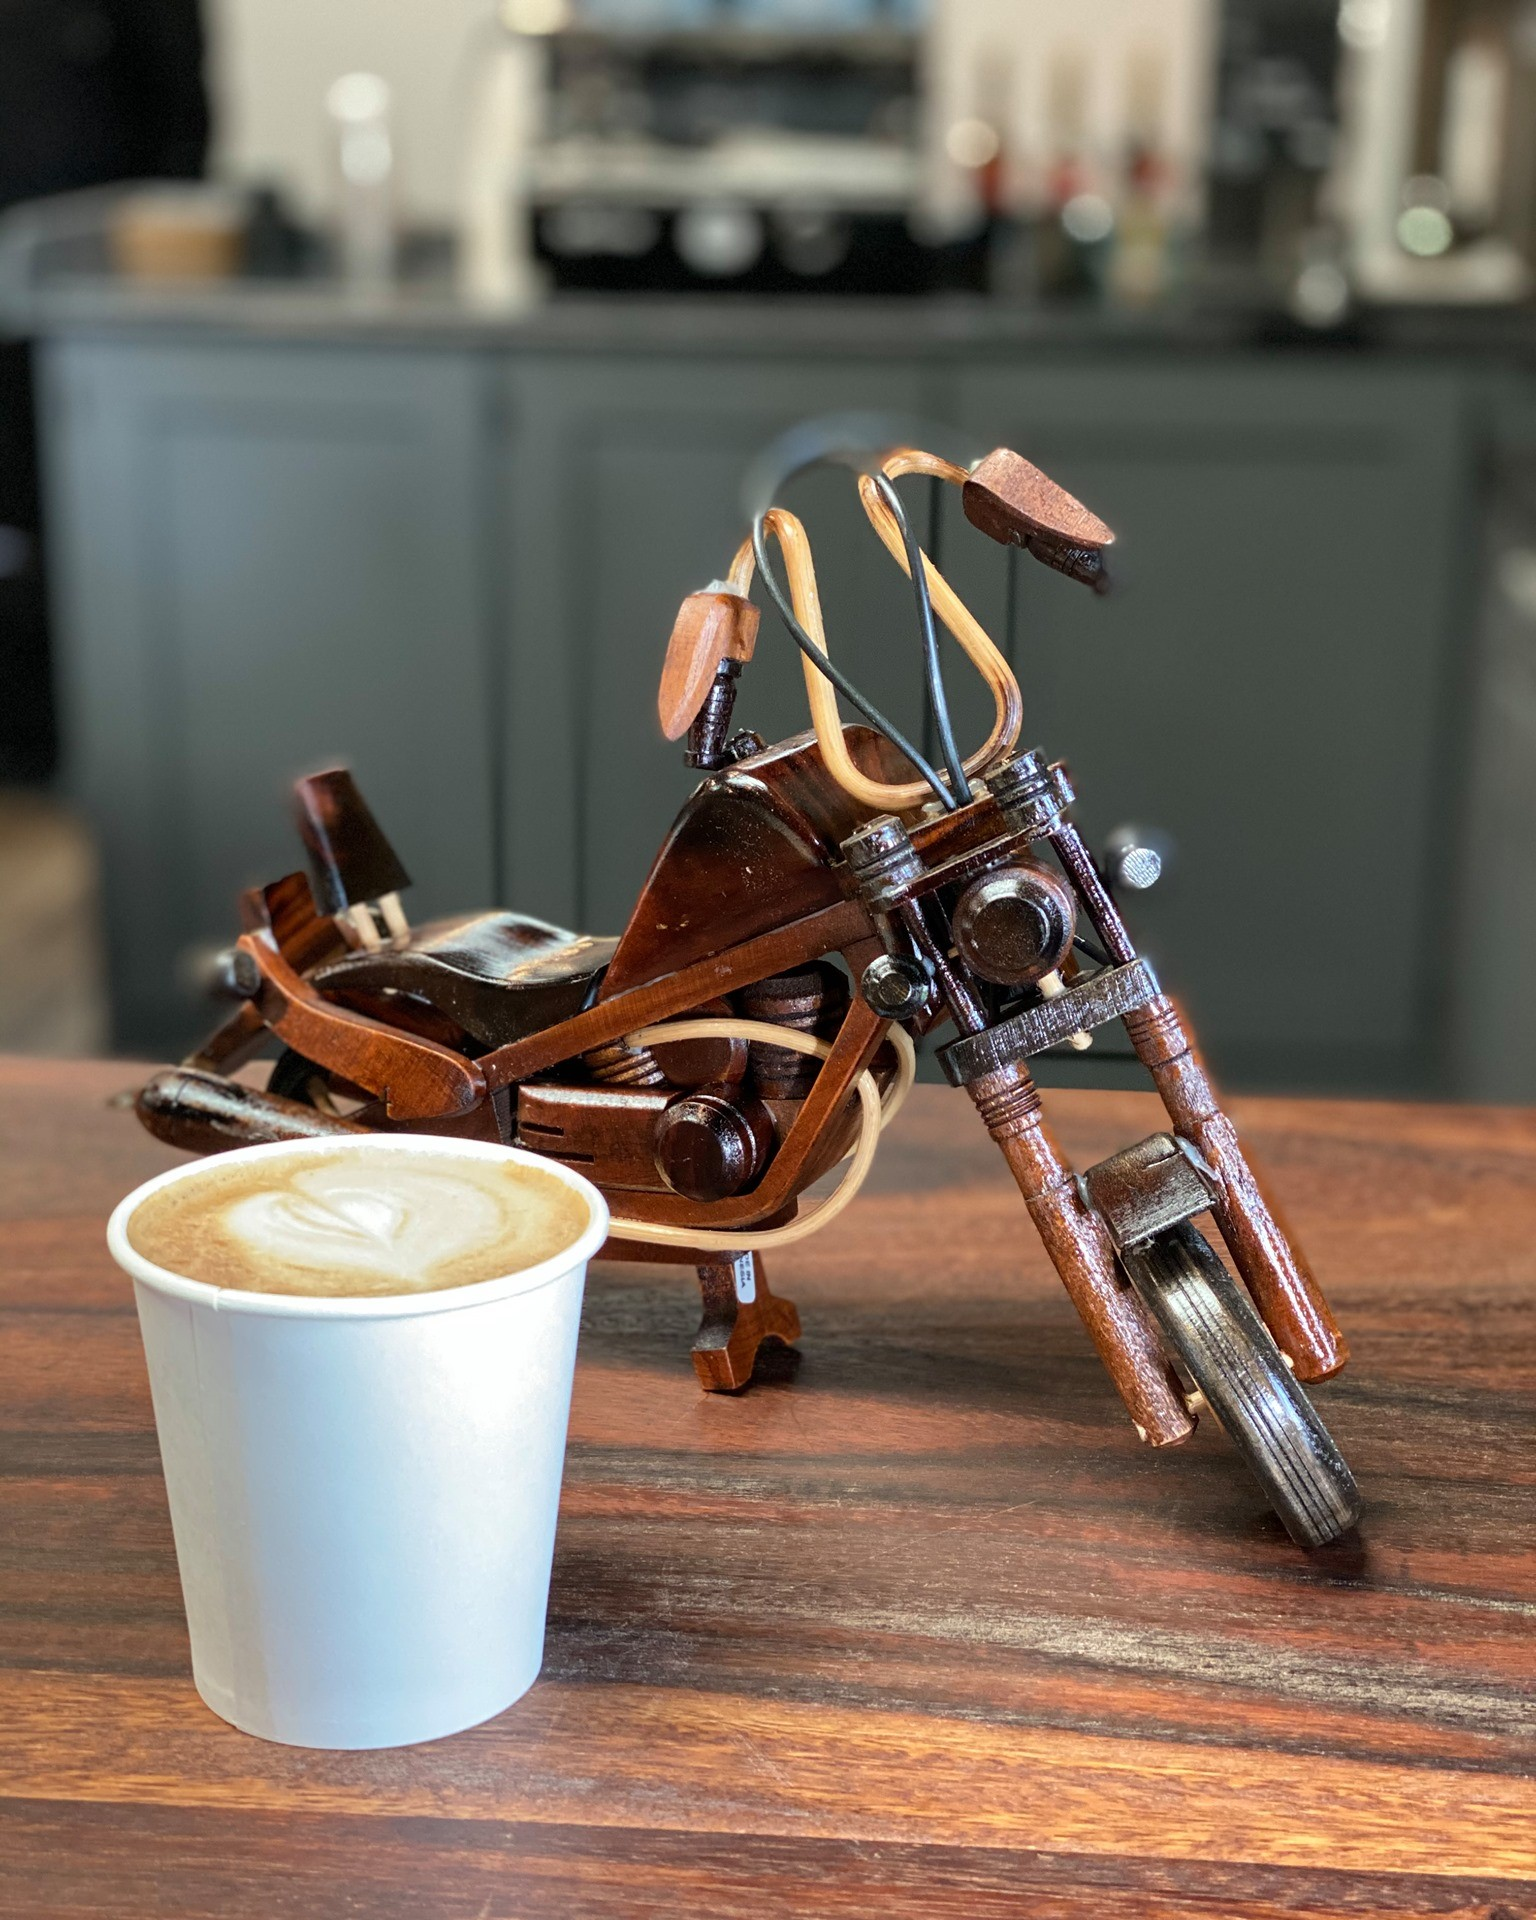 Coffee next to scale wooden motorcycle